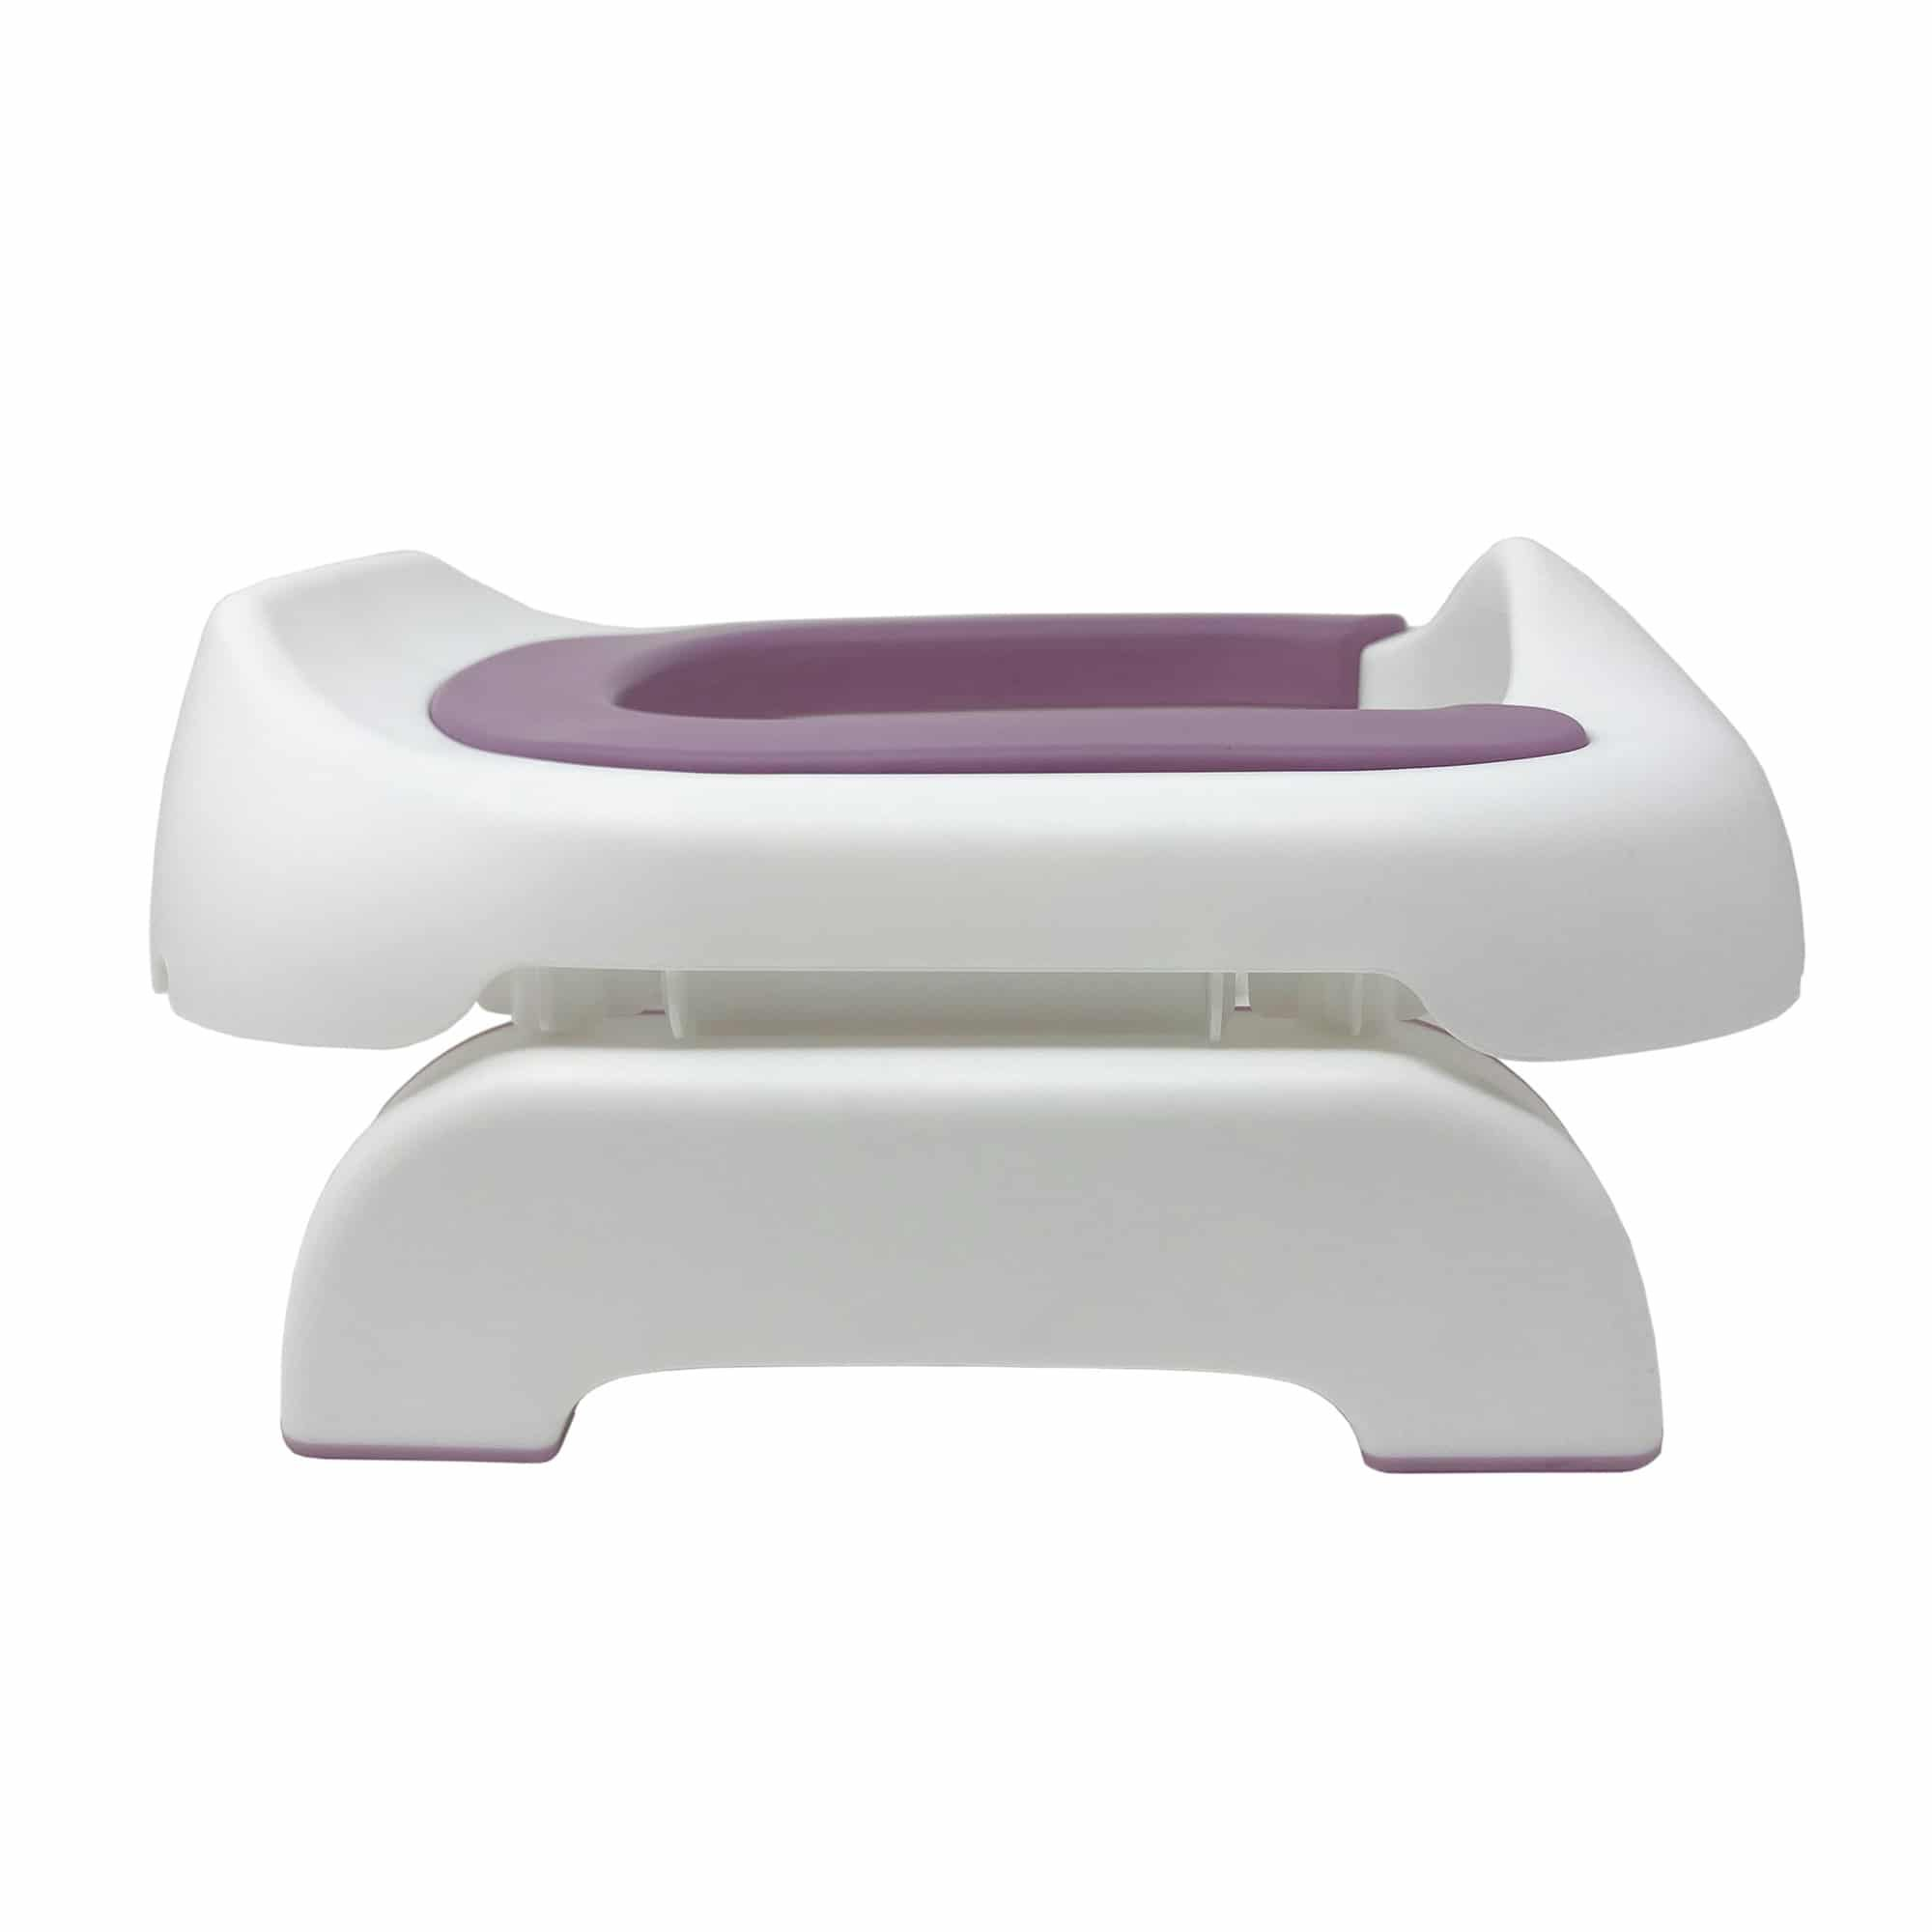 Venture Pote Plus travel potty shot of side in pink